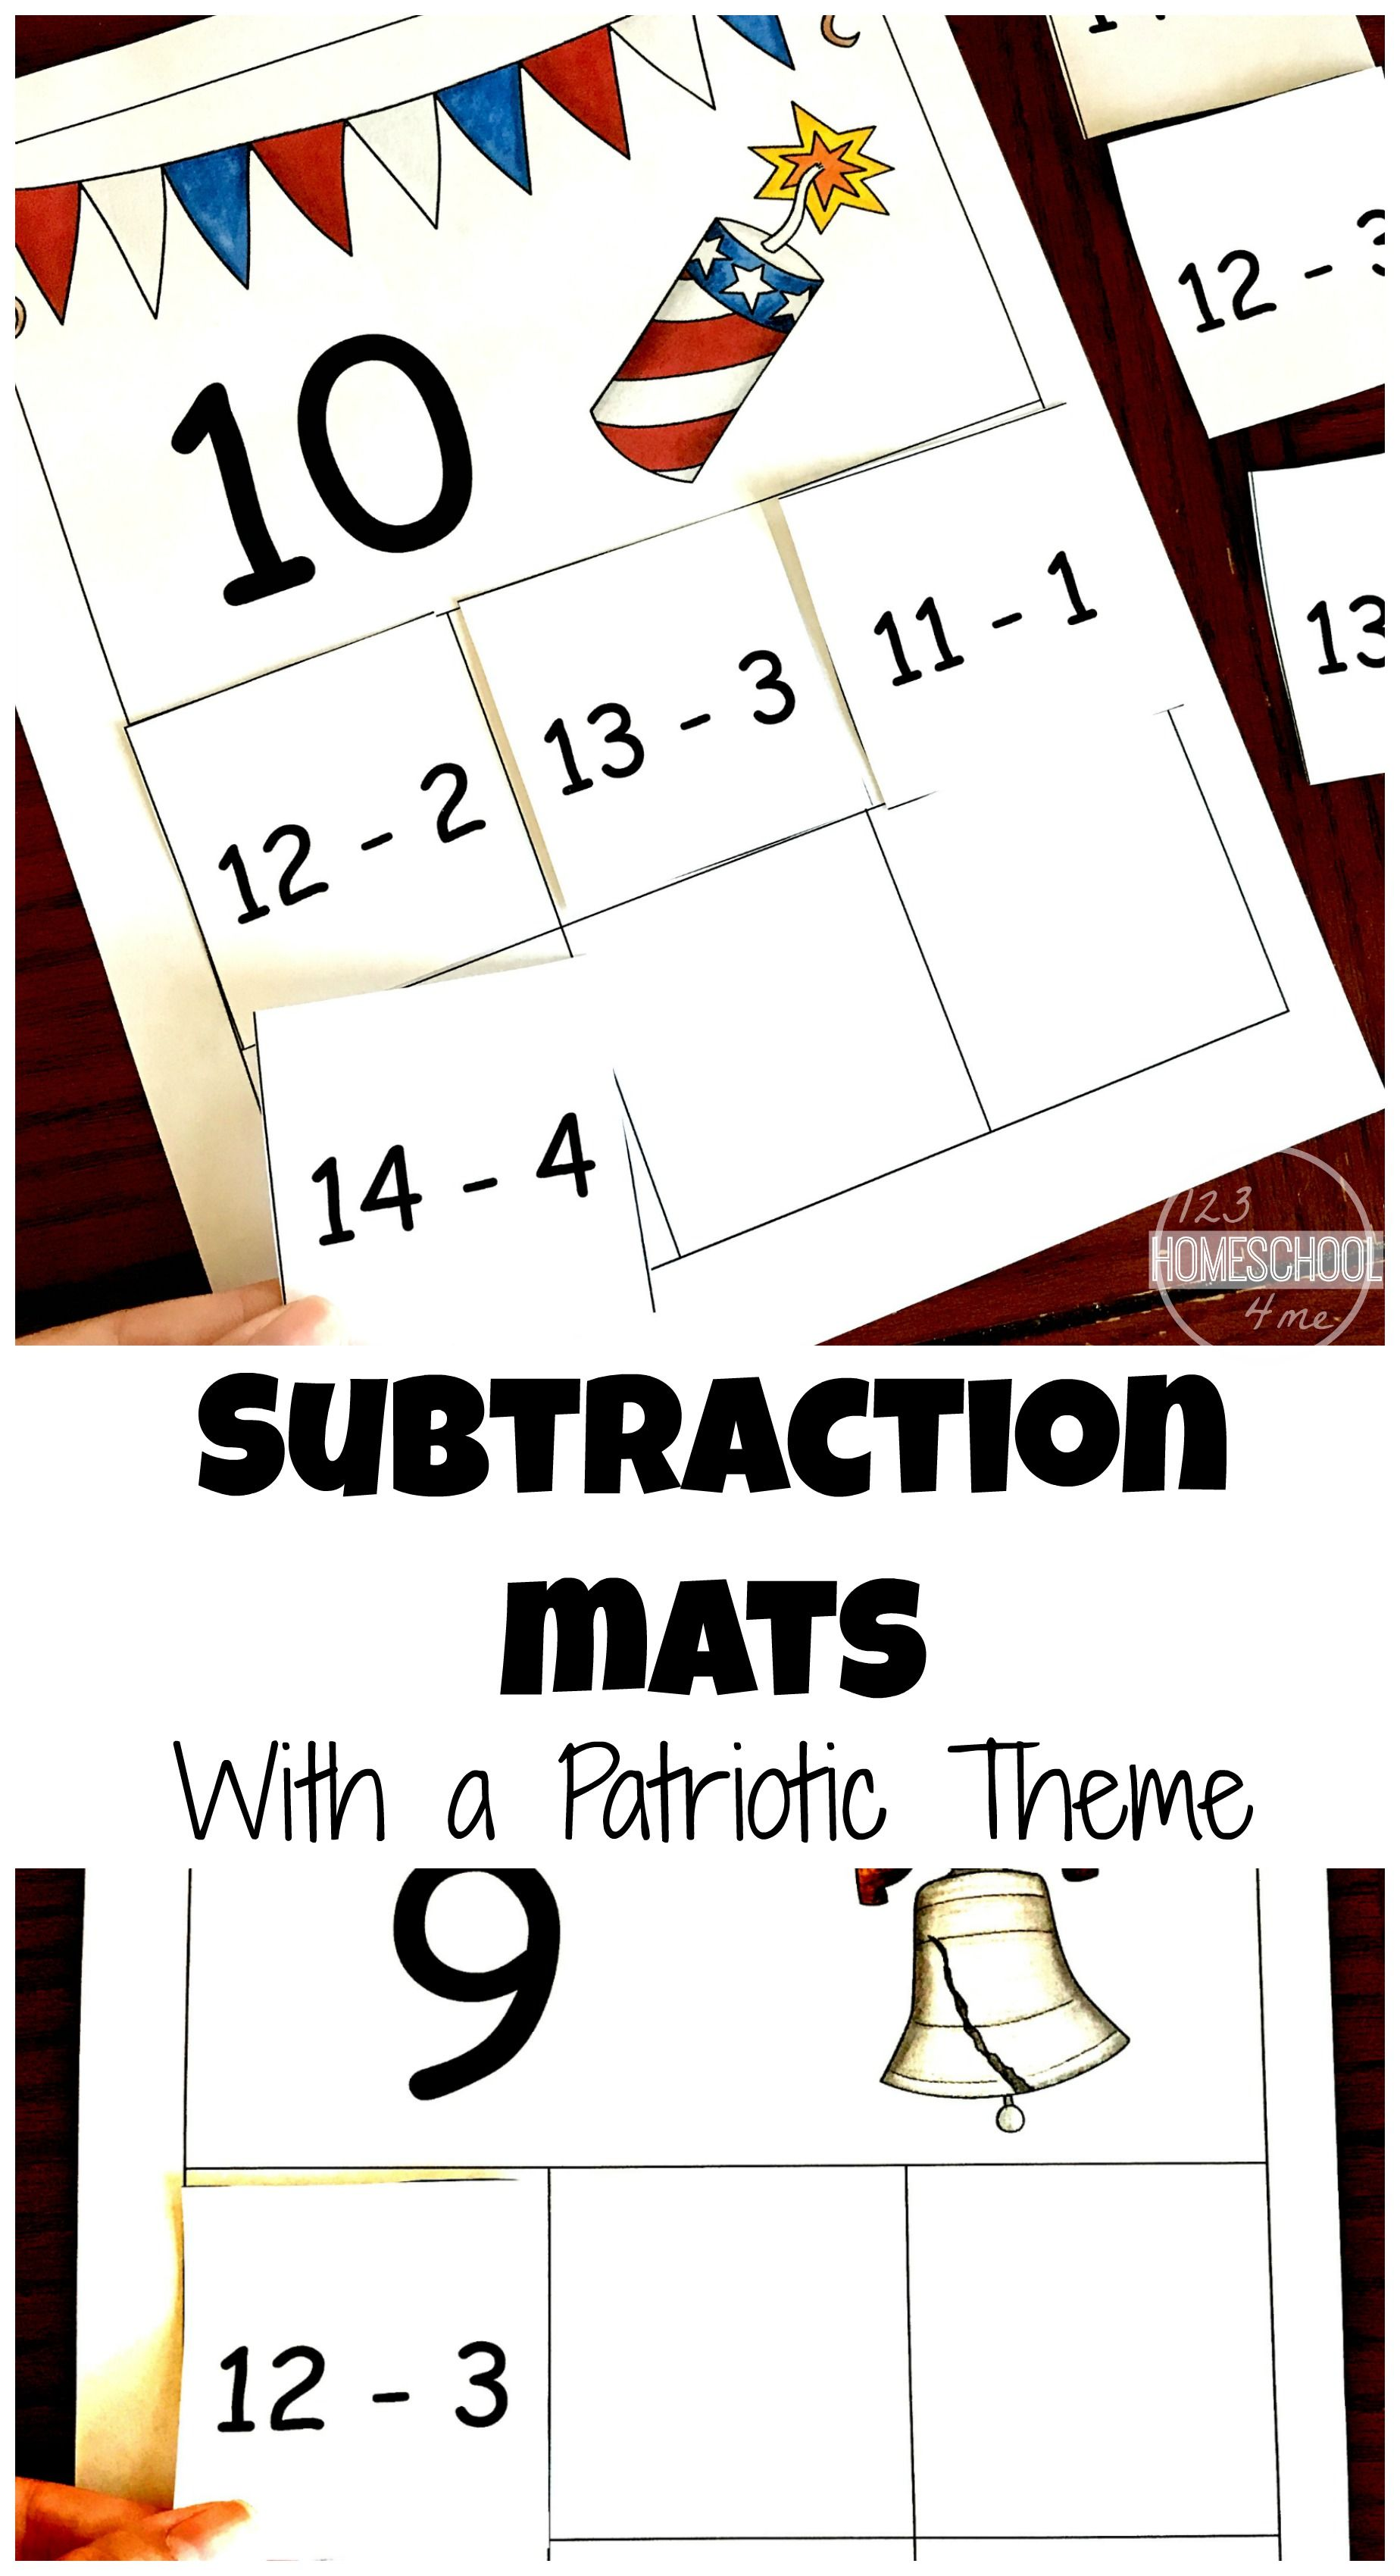 Free Patriotic Subtraction Mats